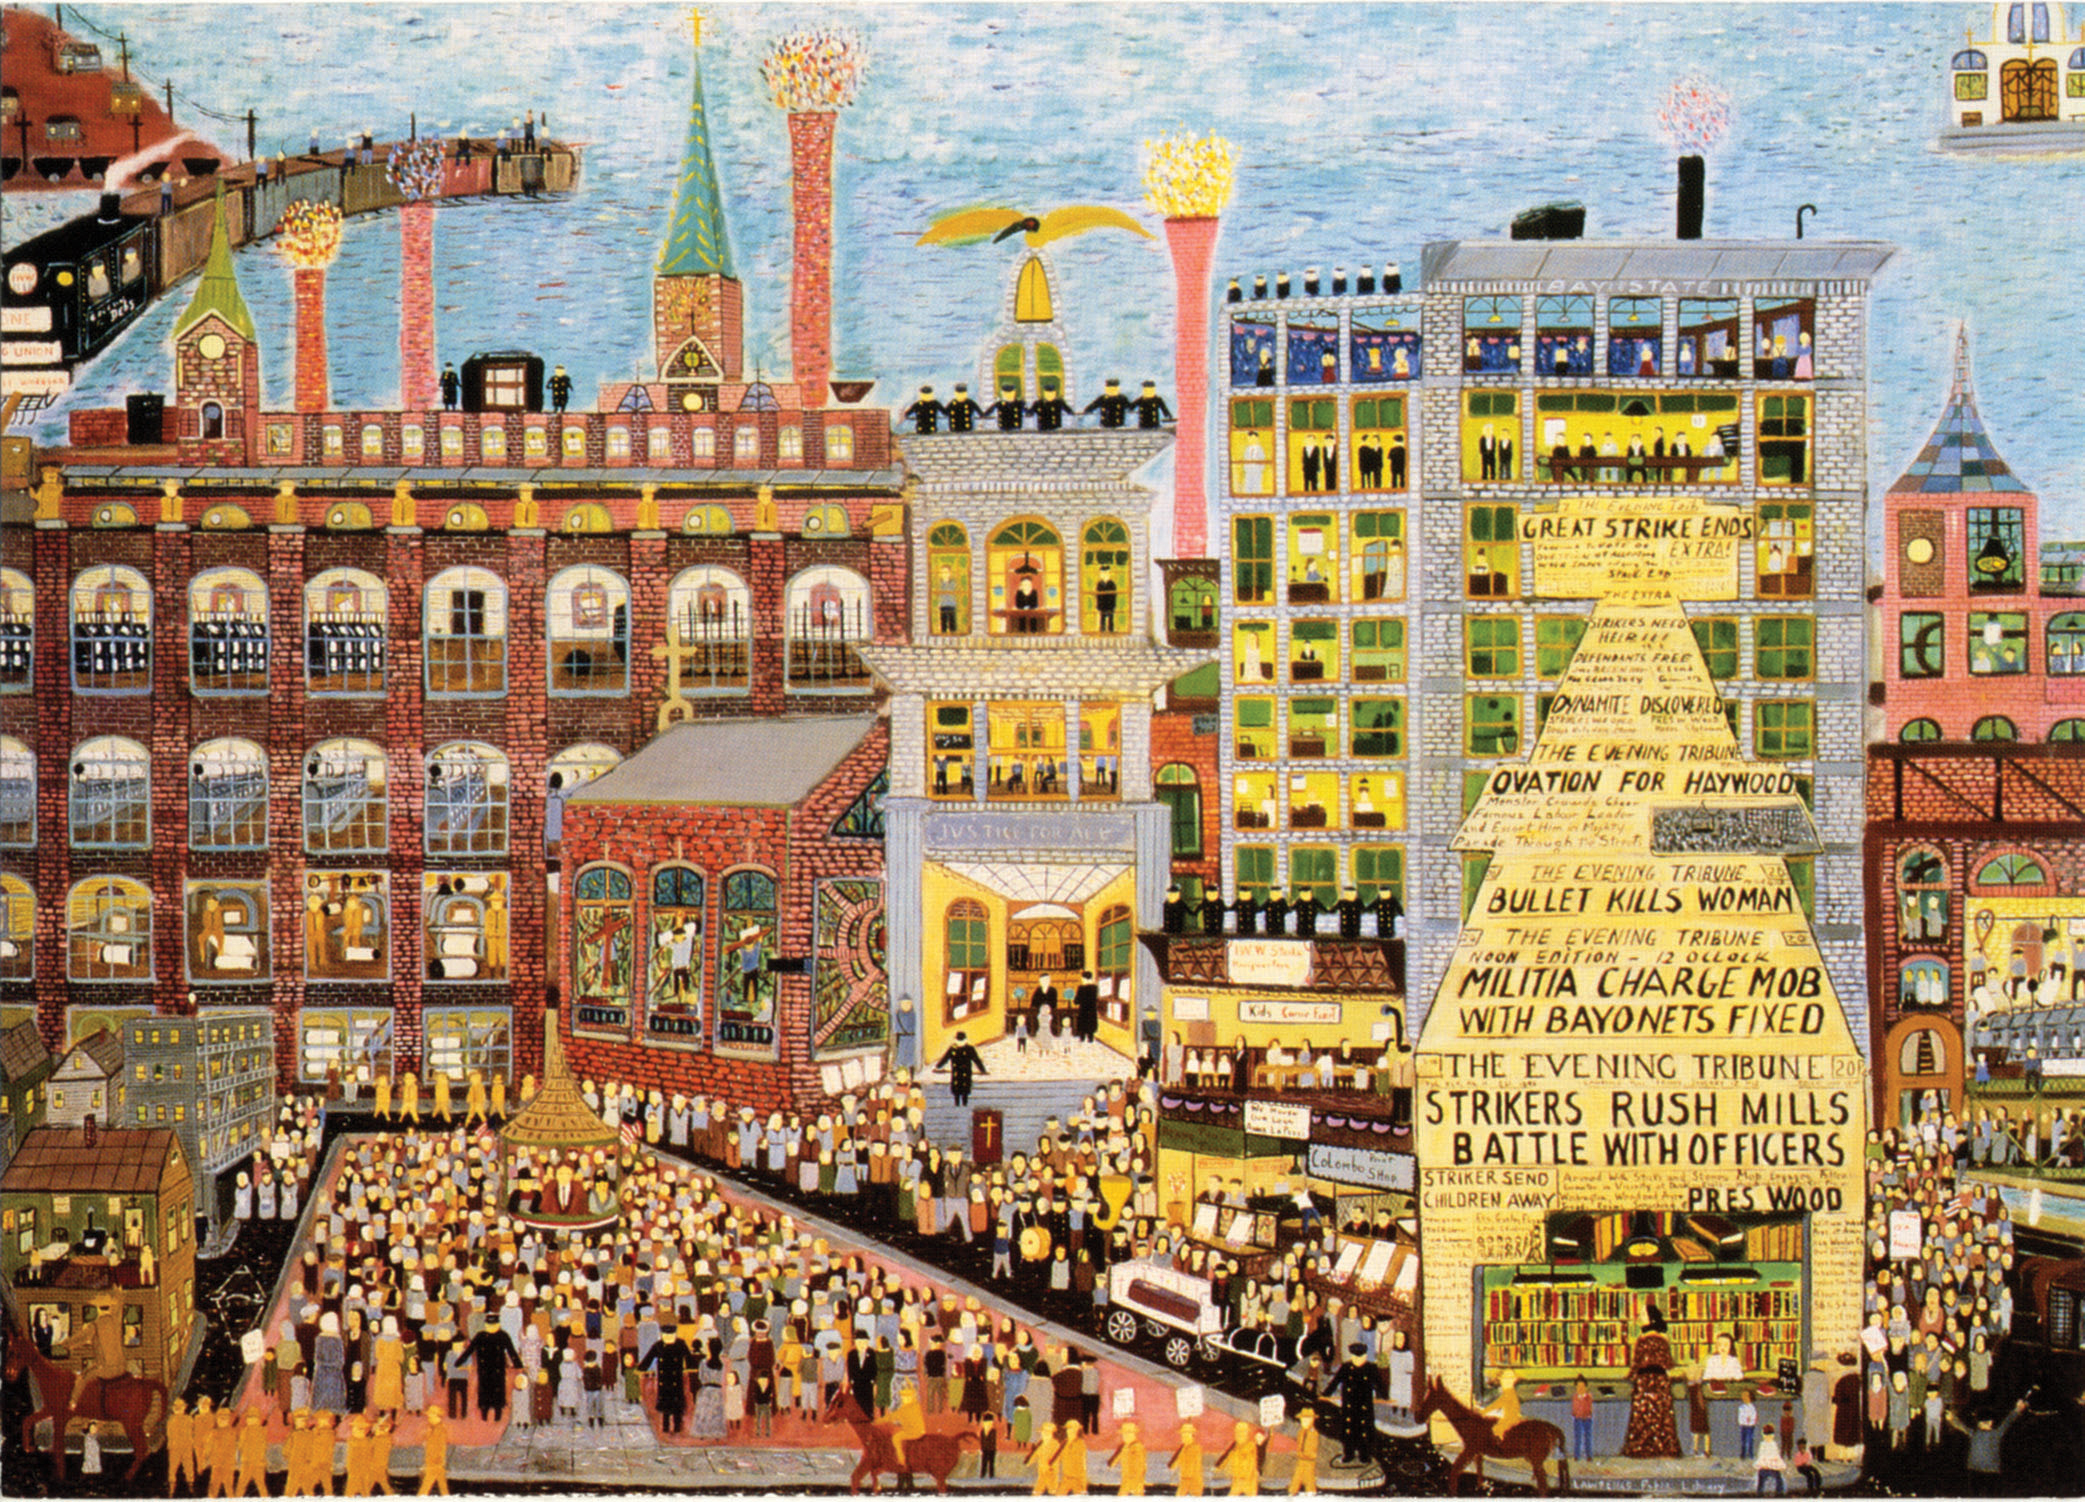 Ralph Fasanella Self Taught Artist Chronicled Workers